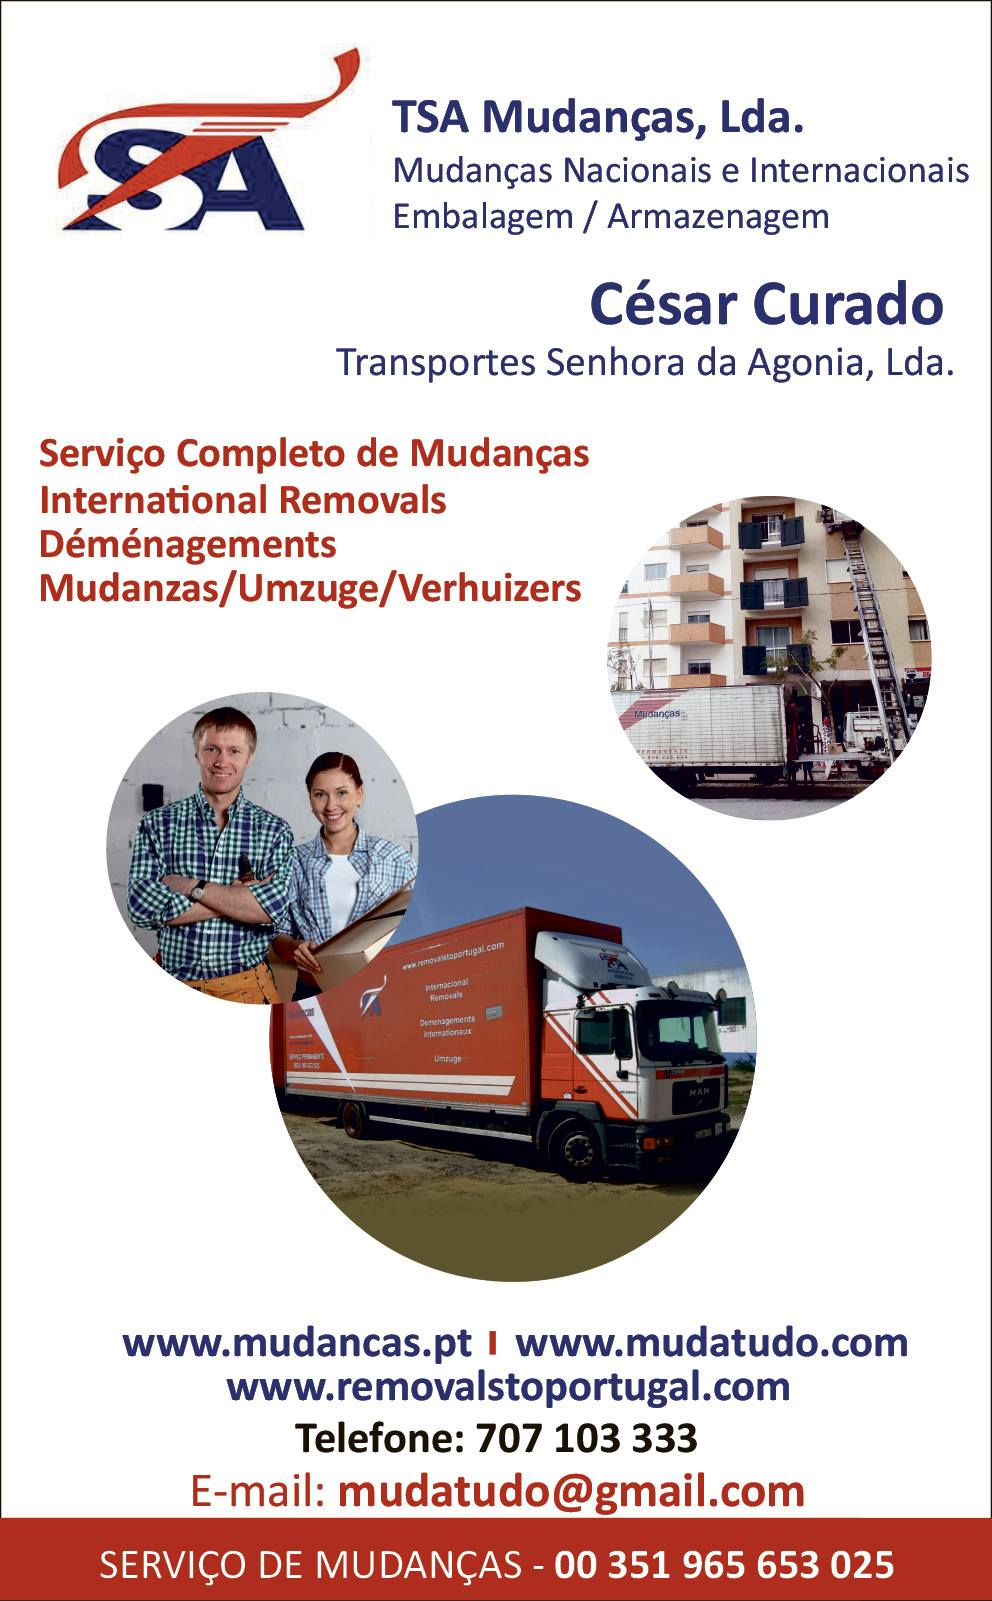 Clients, Transports, Removals, removals, International removals, removals, Social networks, reviews, clients, Moving house, moving transports